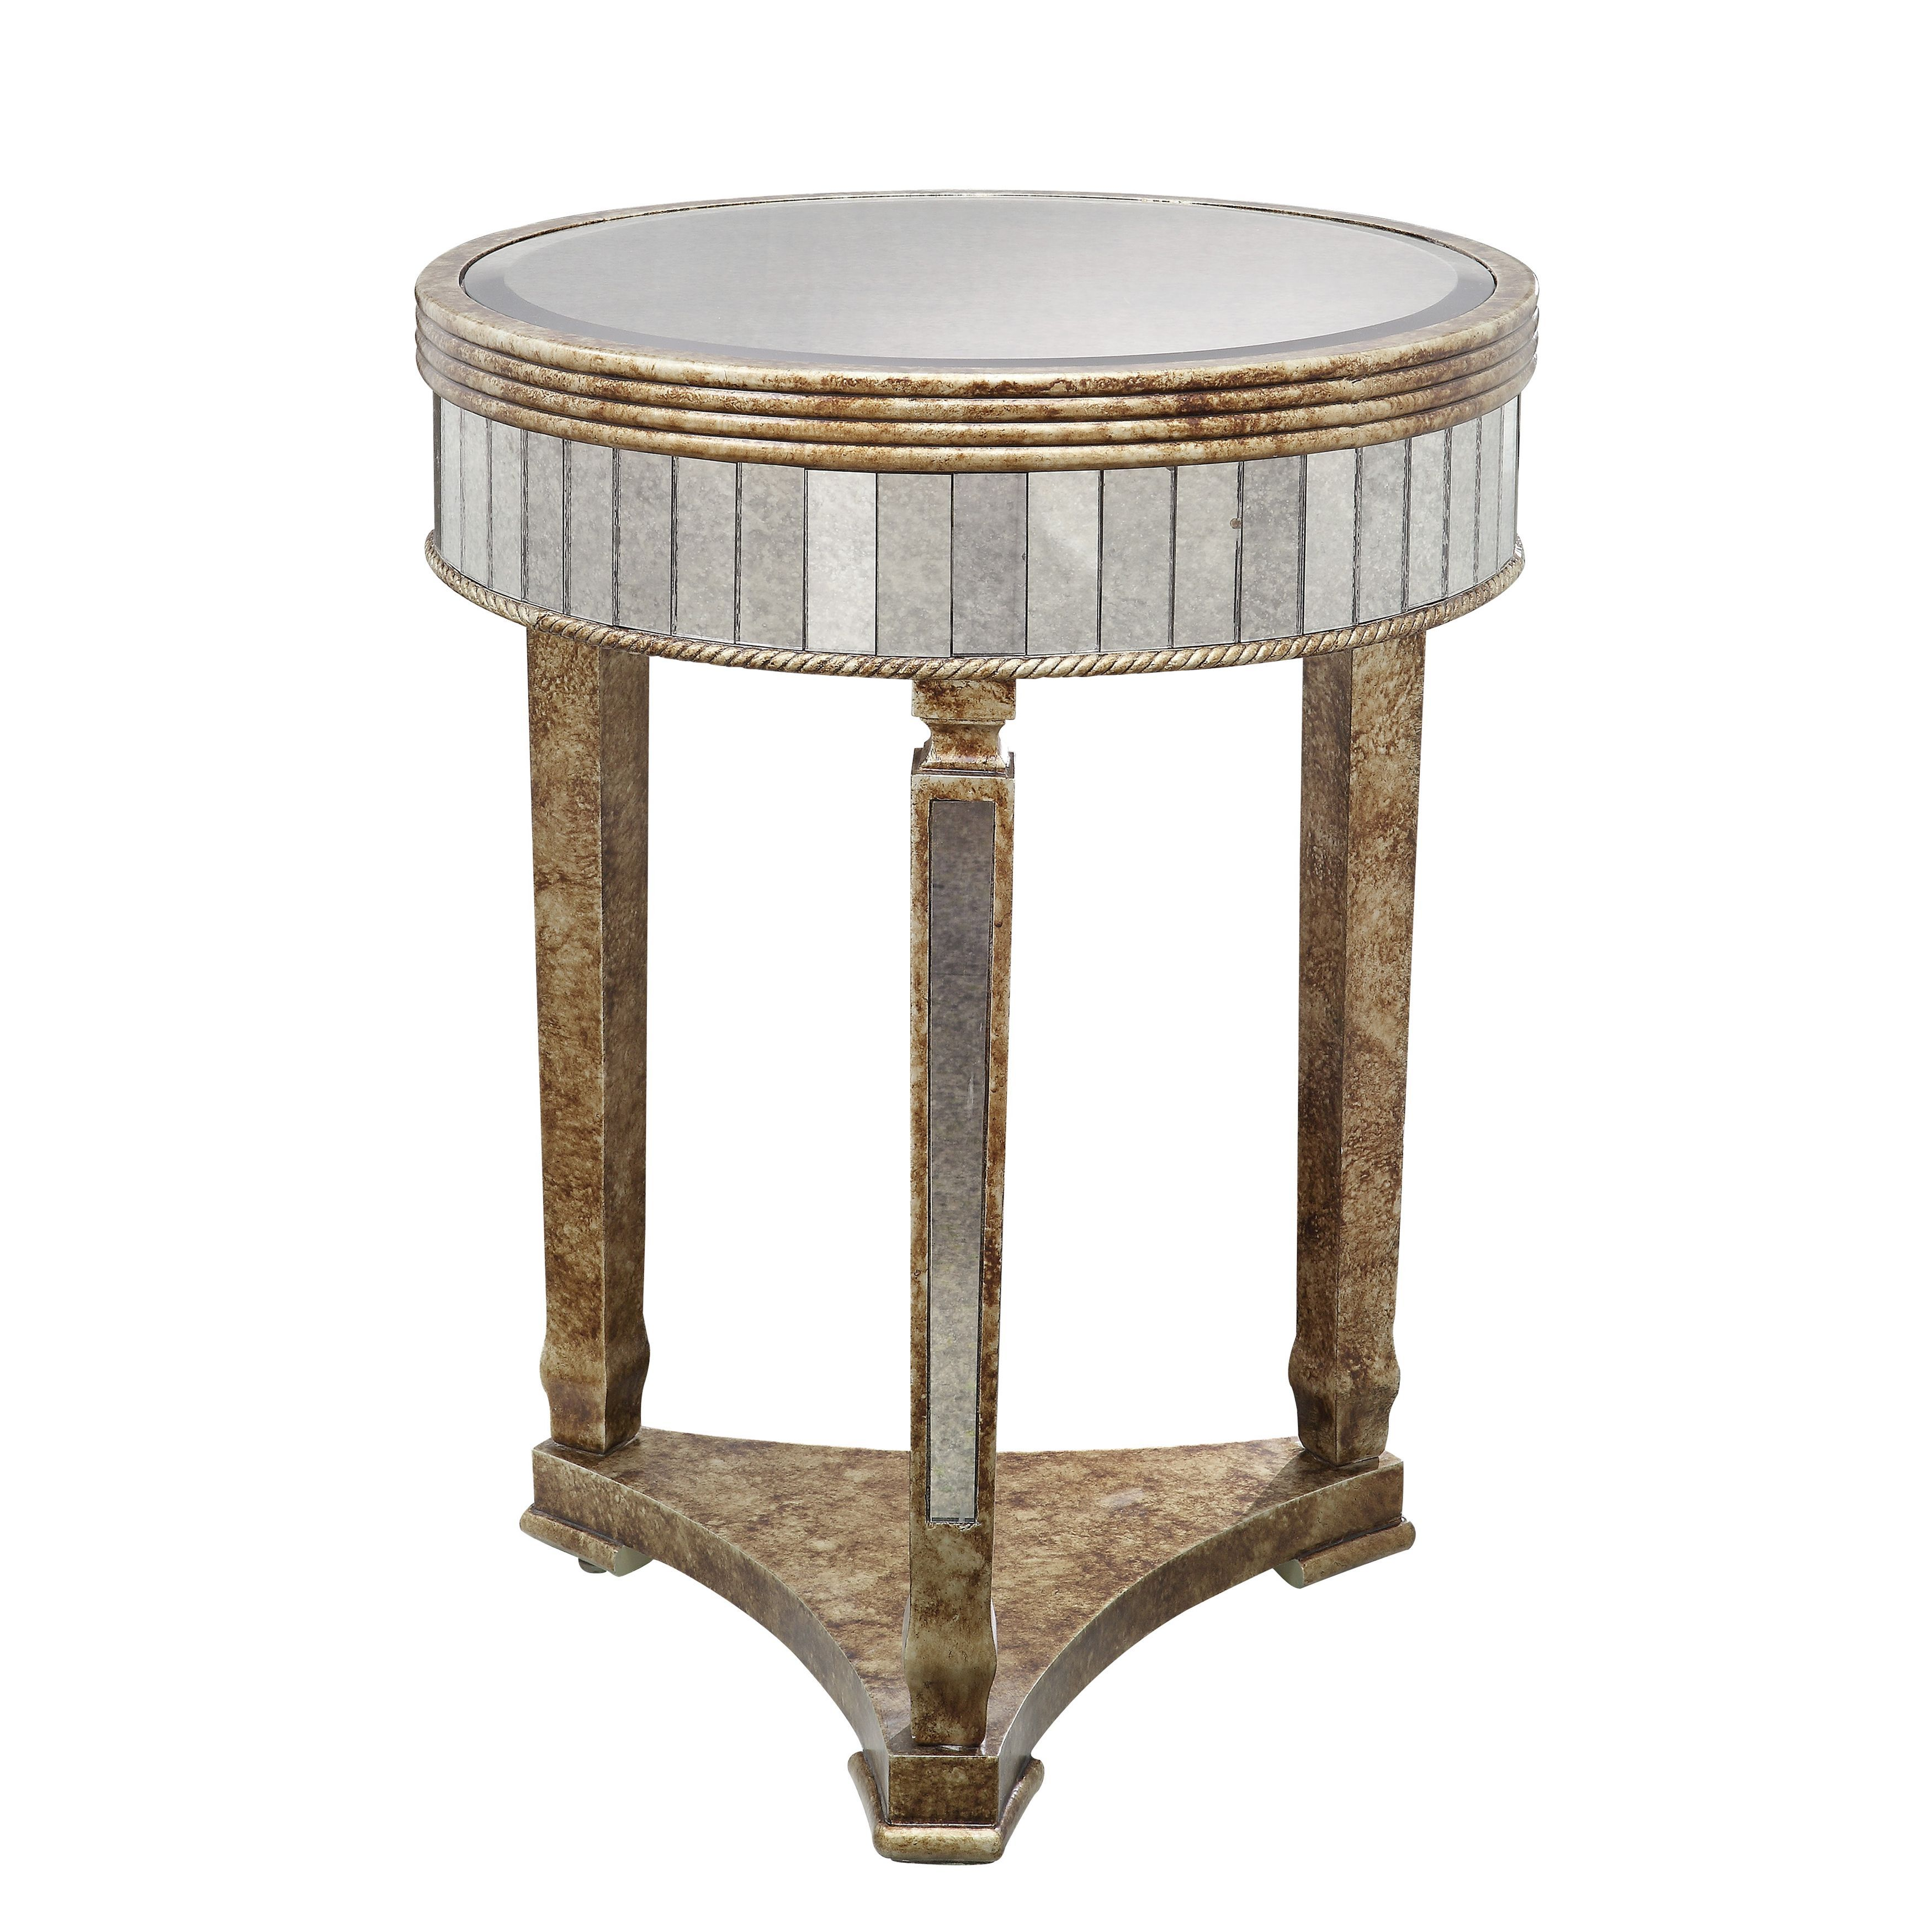 christopher knight home elevon hand pat gold accent table round ping great coffee sofa end tables lamp sets clearance target wood side vaughan furniture big lots cream colored